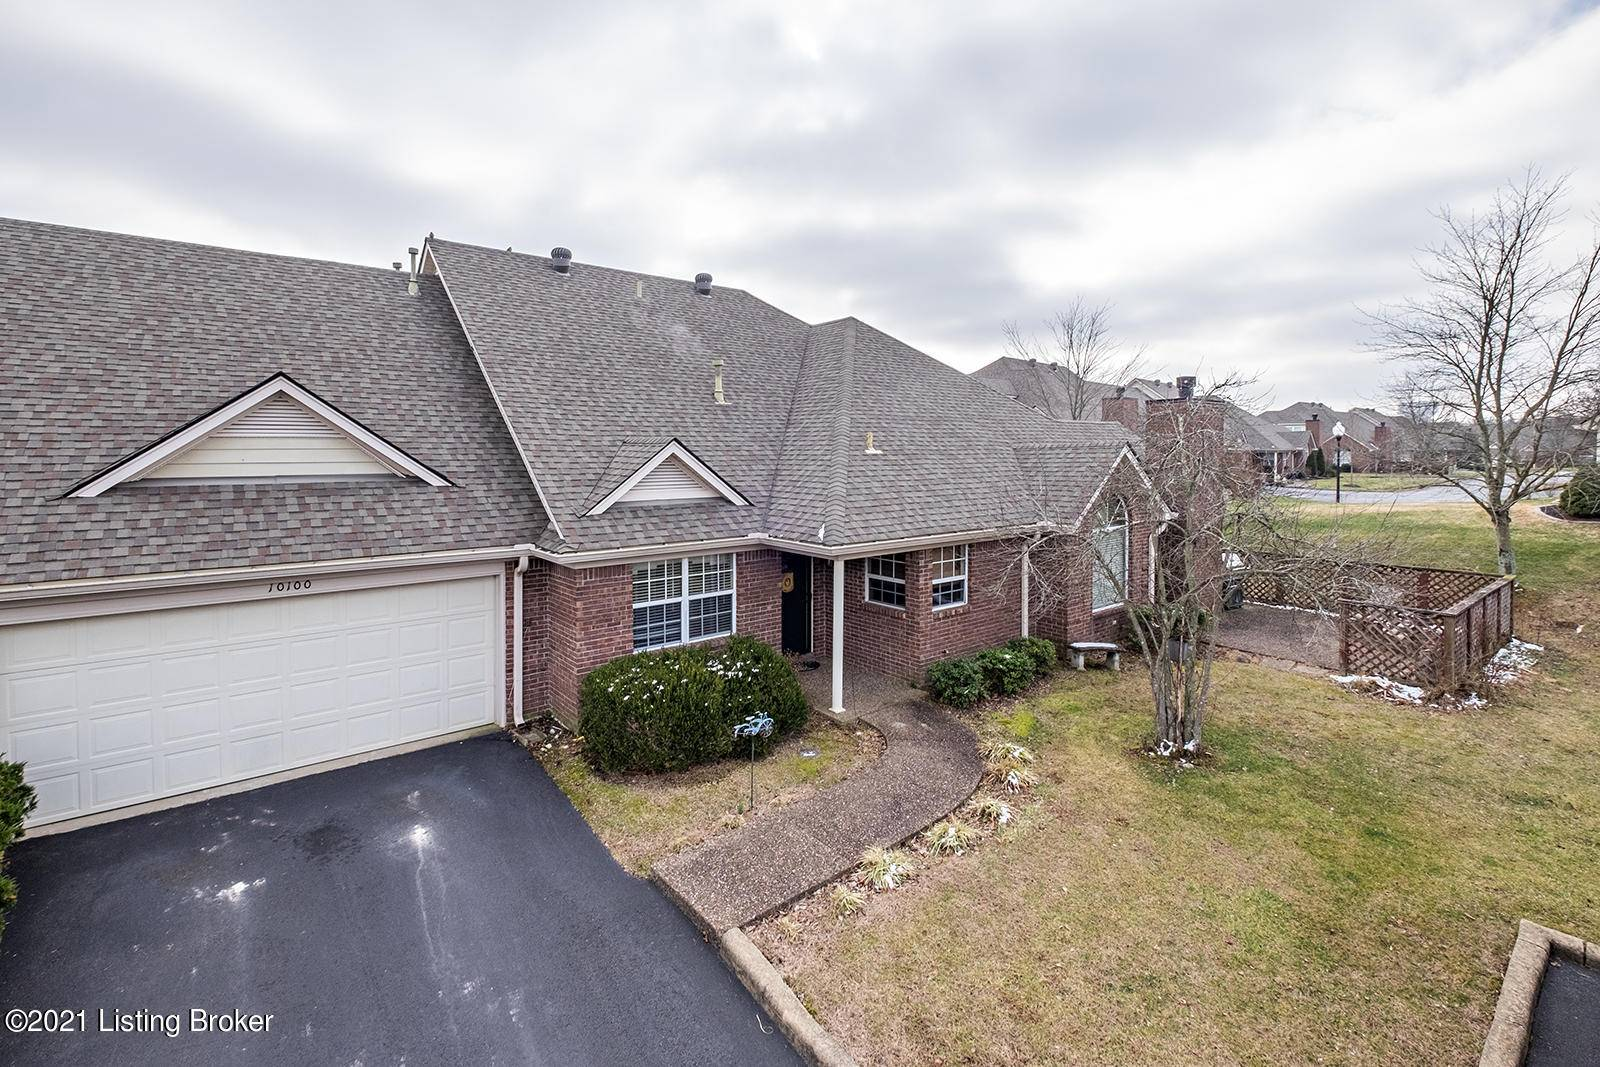 10100 Leaning Tree Ct, Louisville, KY 40291 – 1577209 - The Withrow...